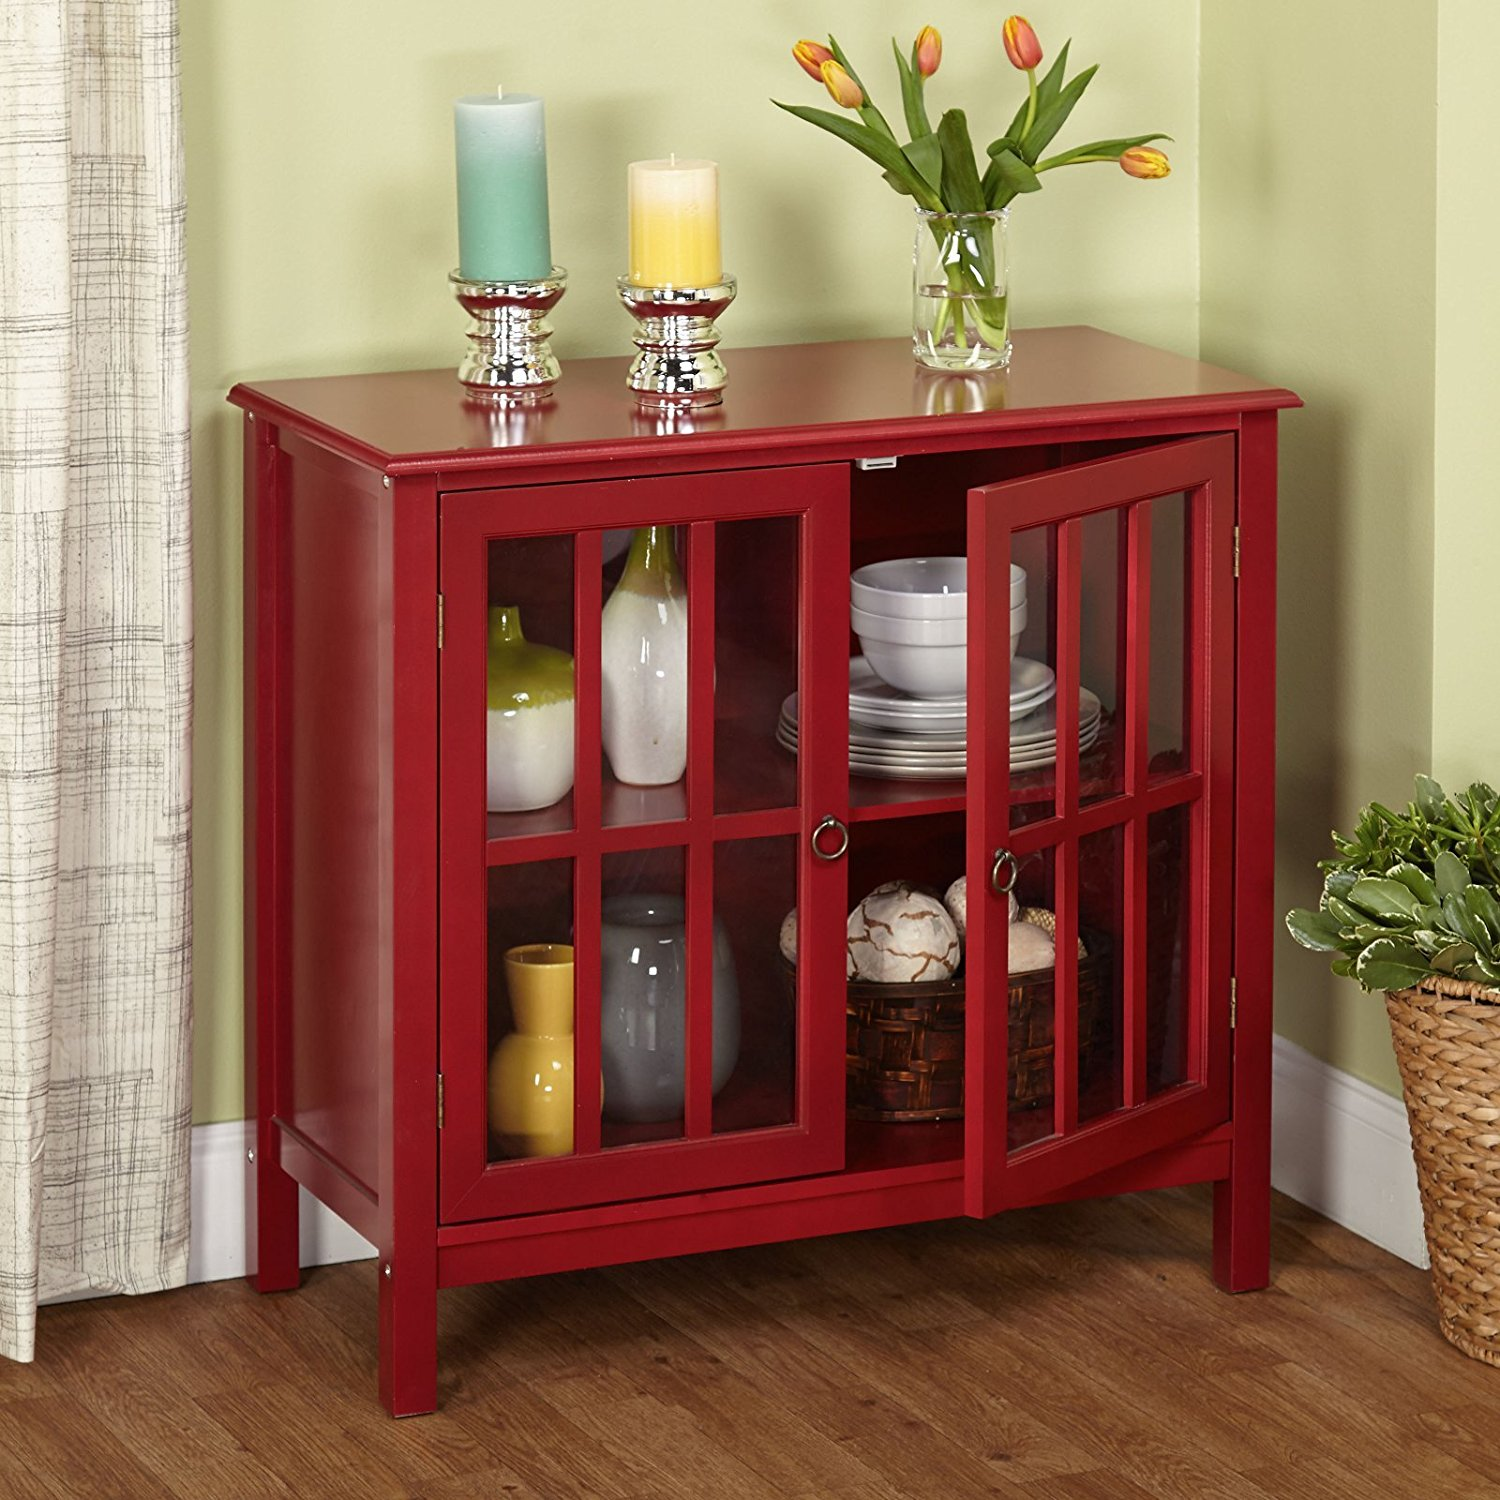 red accent cabinet kitchen elegant furniture more character with cabinets jeanettejames target table beautiful dining room gold home decor bistro set white plastic patio side